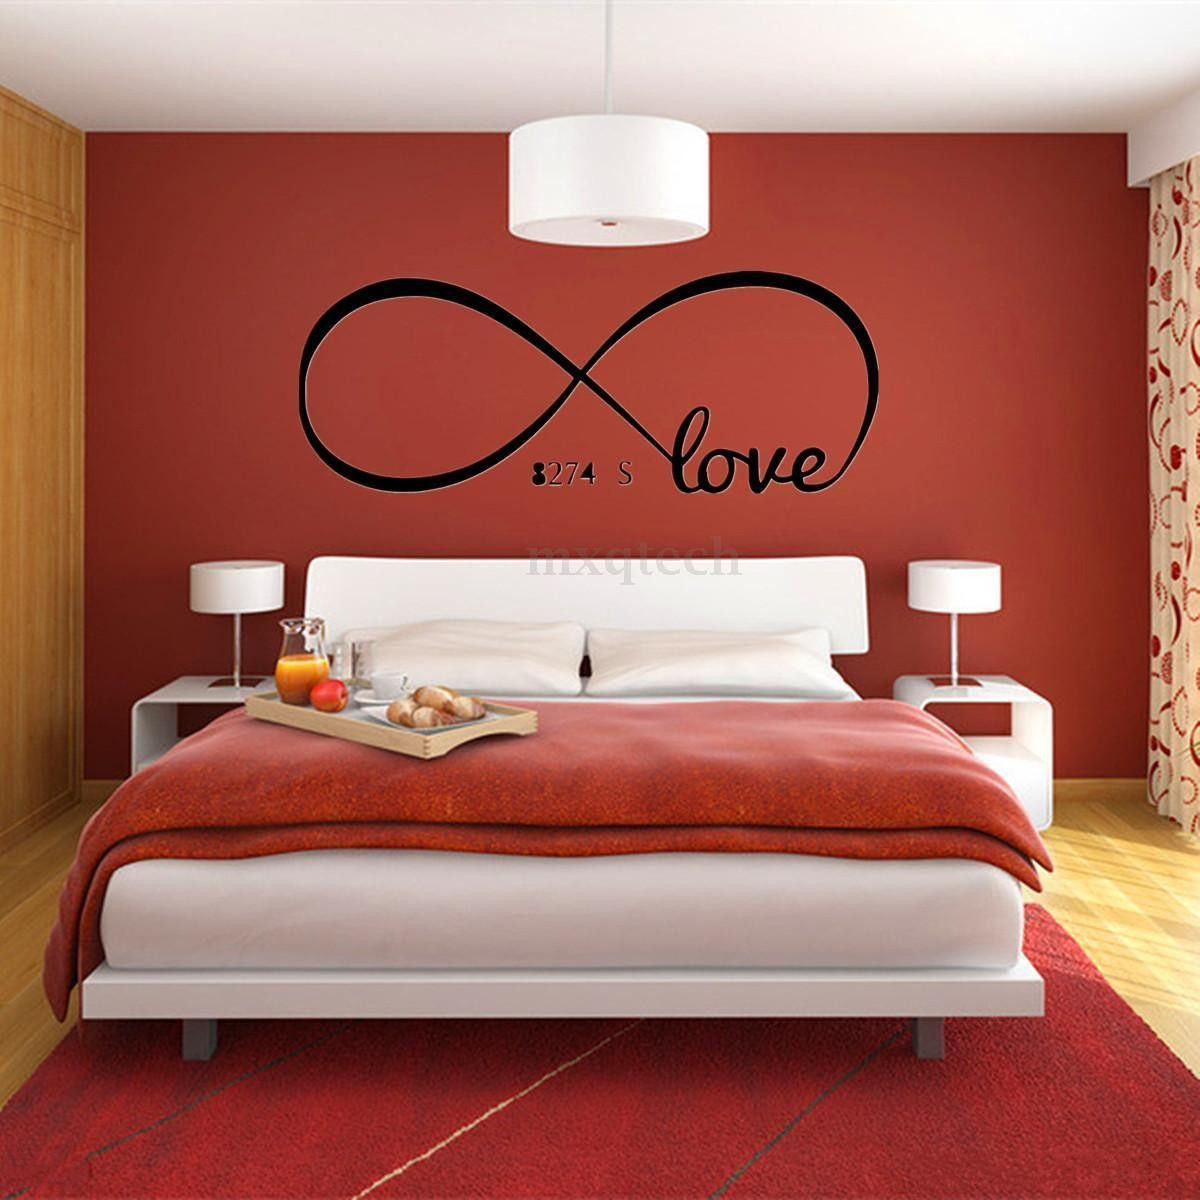 Make love to your partner with these beautiful bedroom wall ...